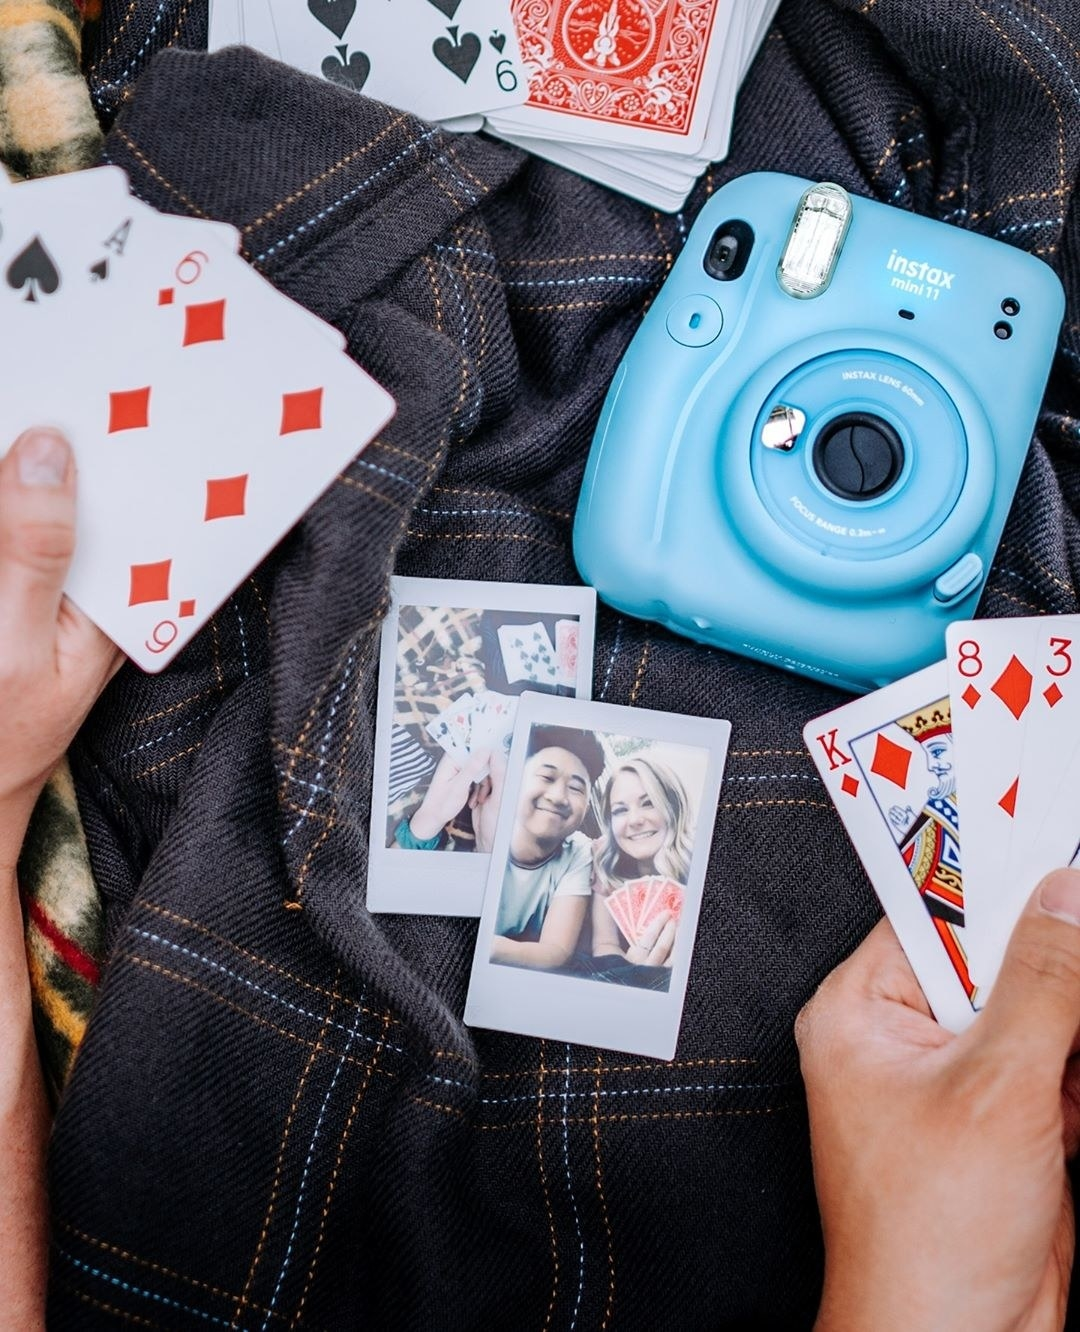 A Fujifilm camera on a cloth with two pictures and playing cards